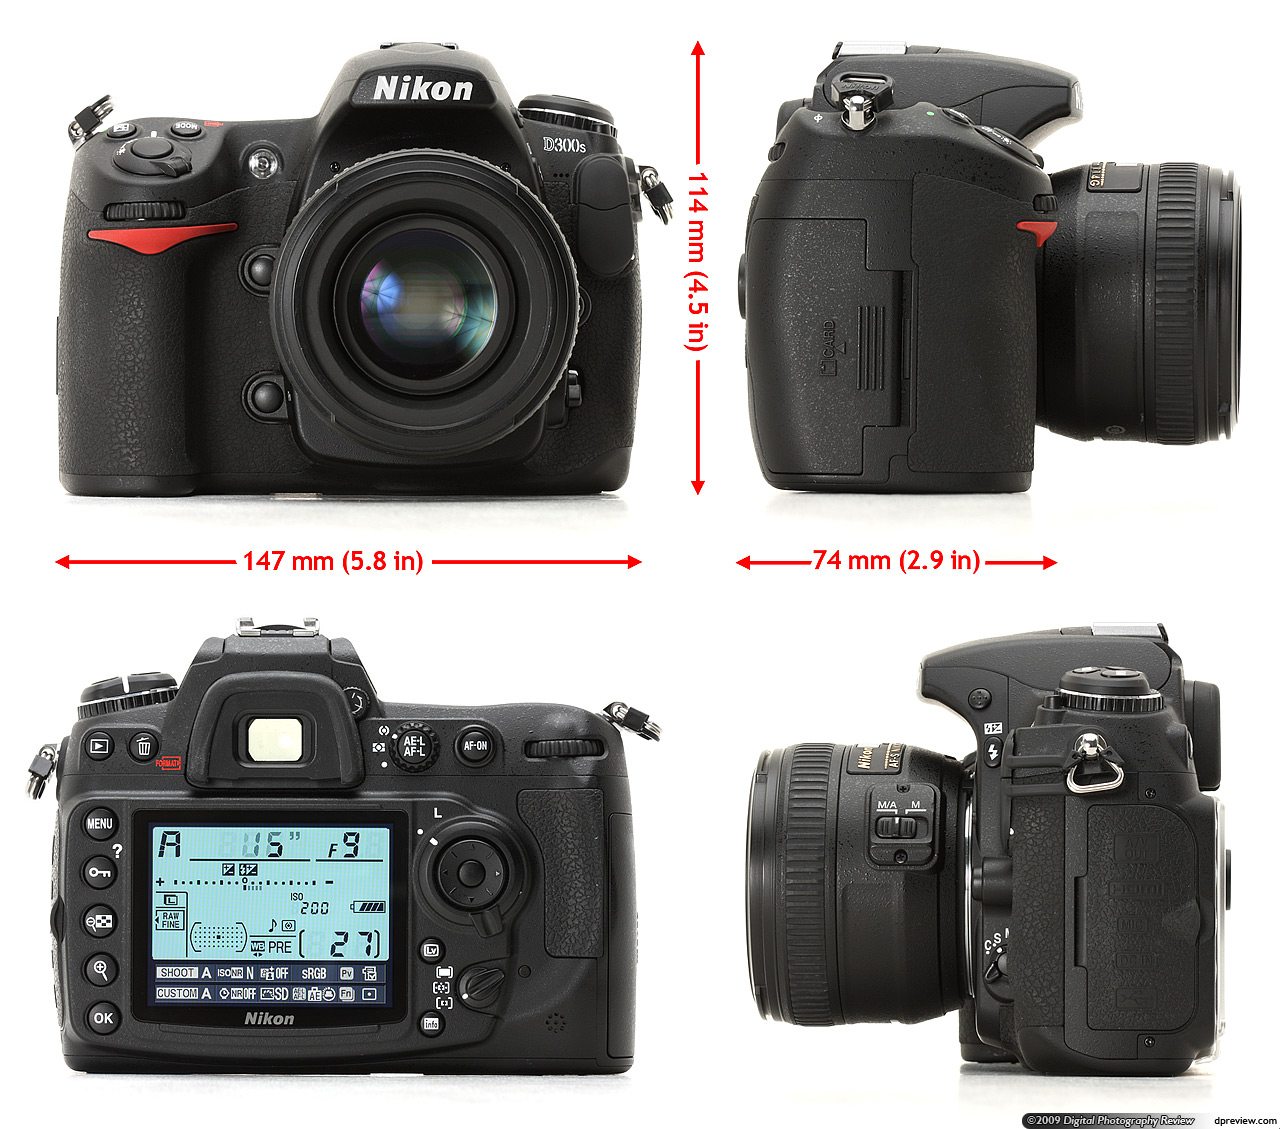 Nikon D300S In-depth Review: Digital Photography Review